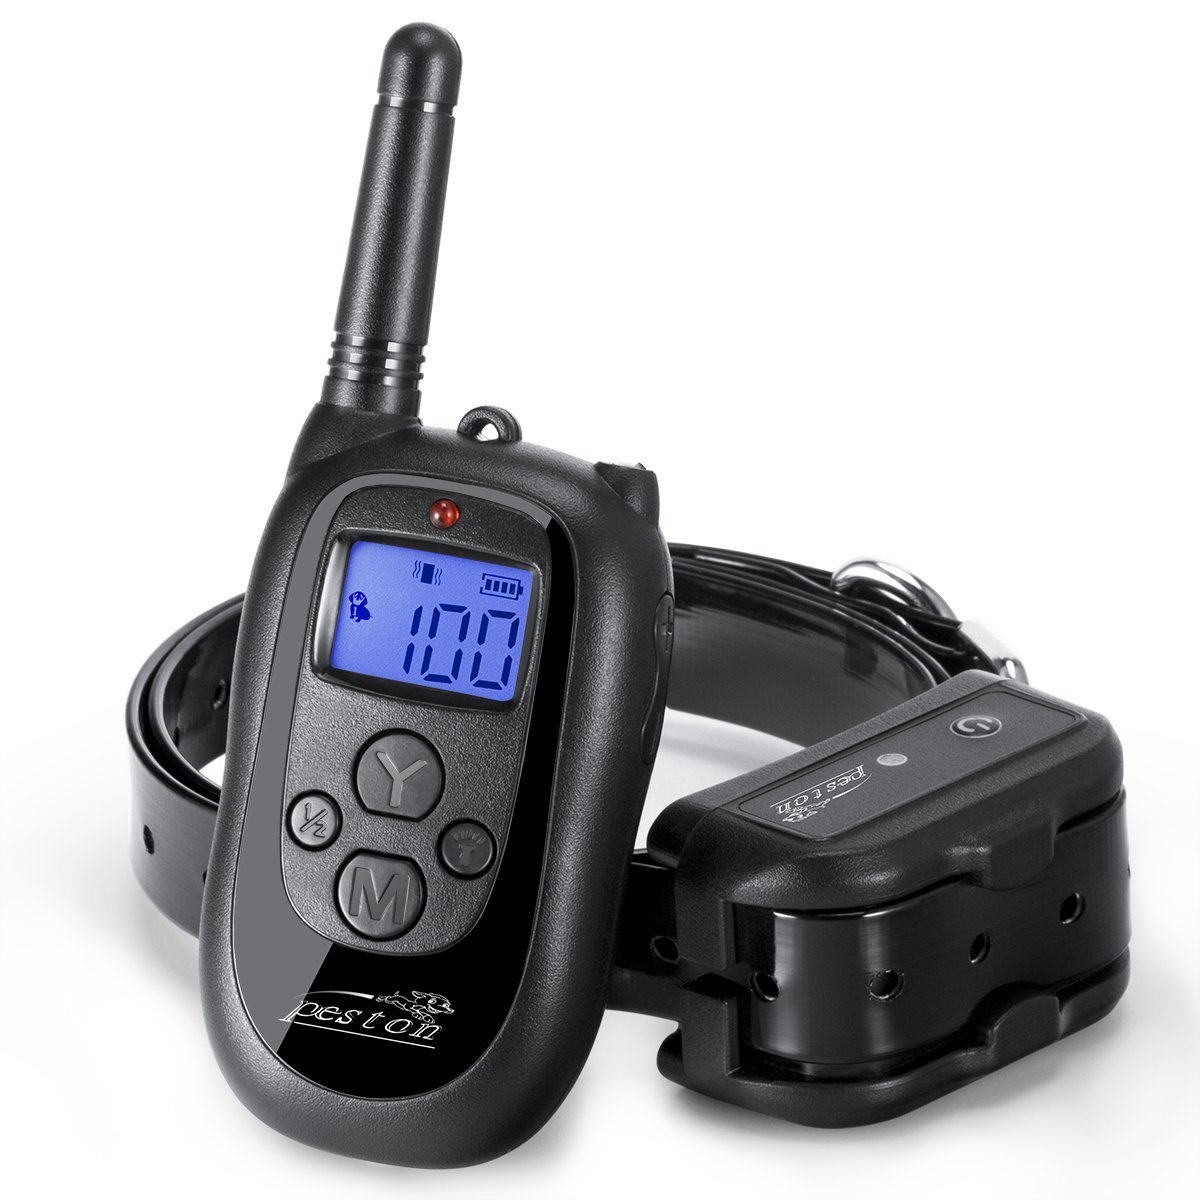 PESTON Remote Dog Training Collar Rechargeable and 100% Waterproof with Beep Vibration and Shock Electronic Collar 1000ft Range